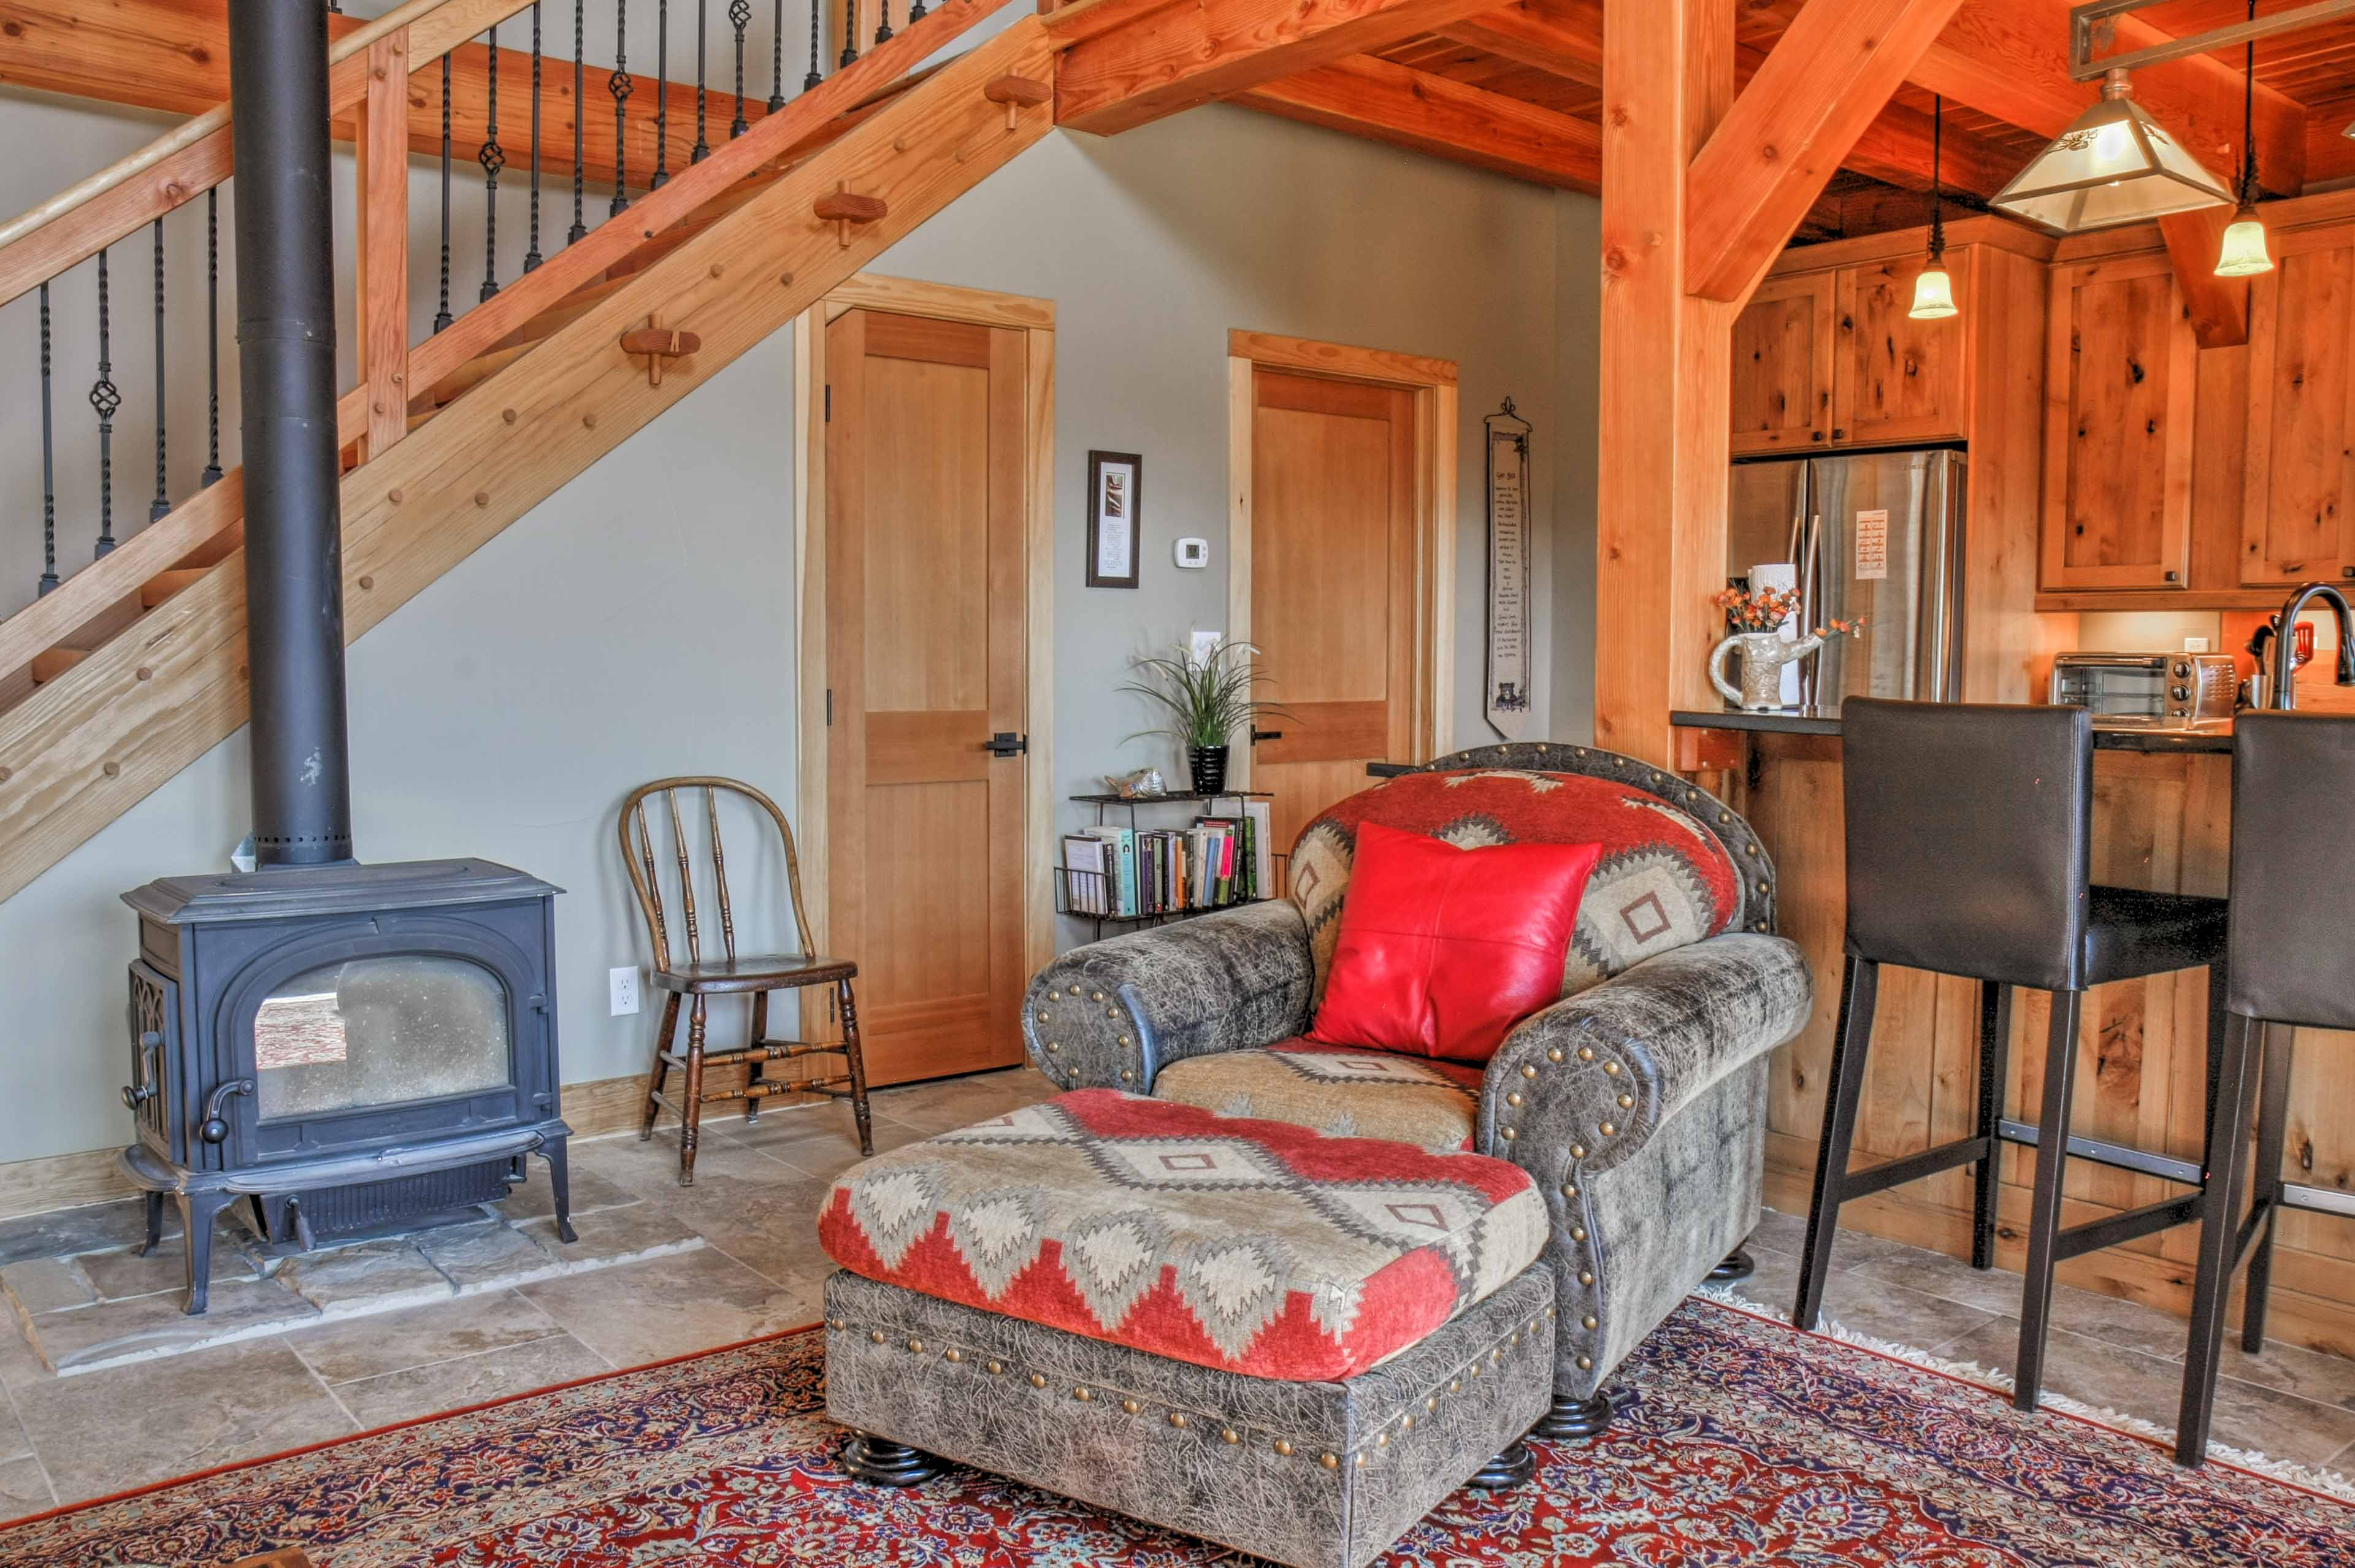 Warm your toes by the wood-burning stove in the living room.